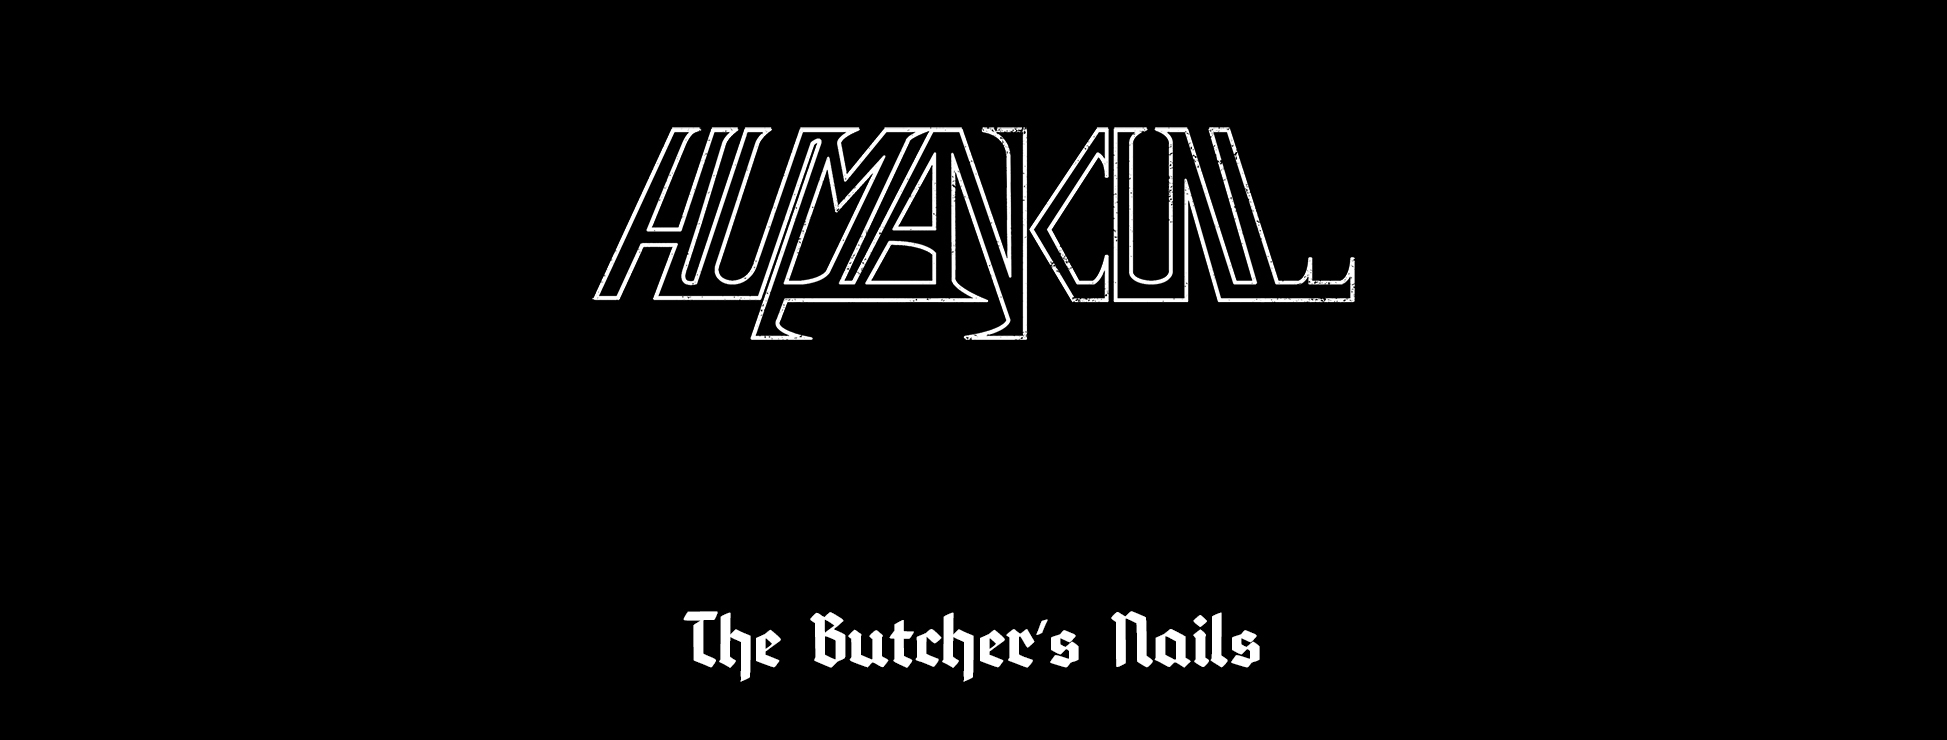 HUMAN_CULL_The_Butchers_Nails_-_Black